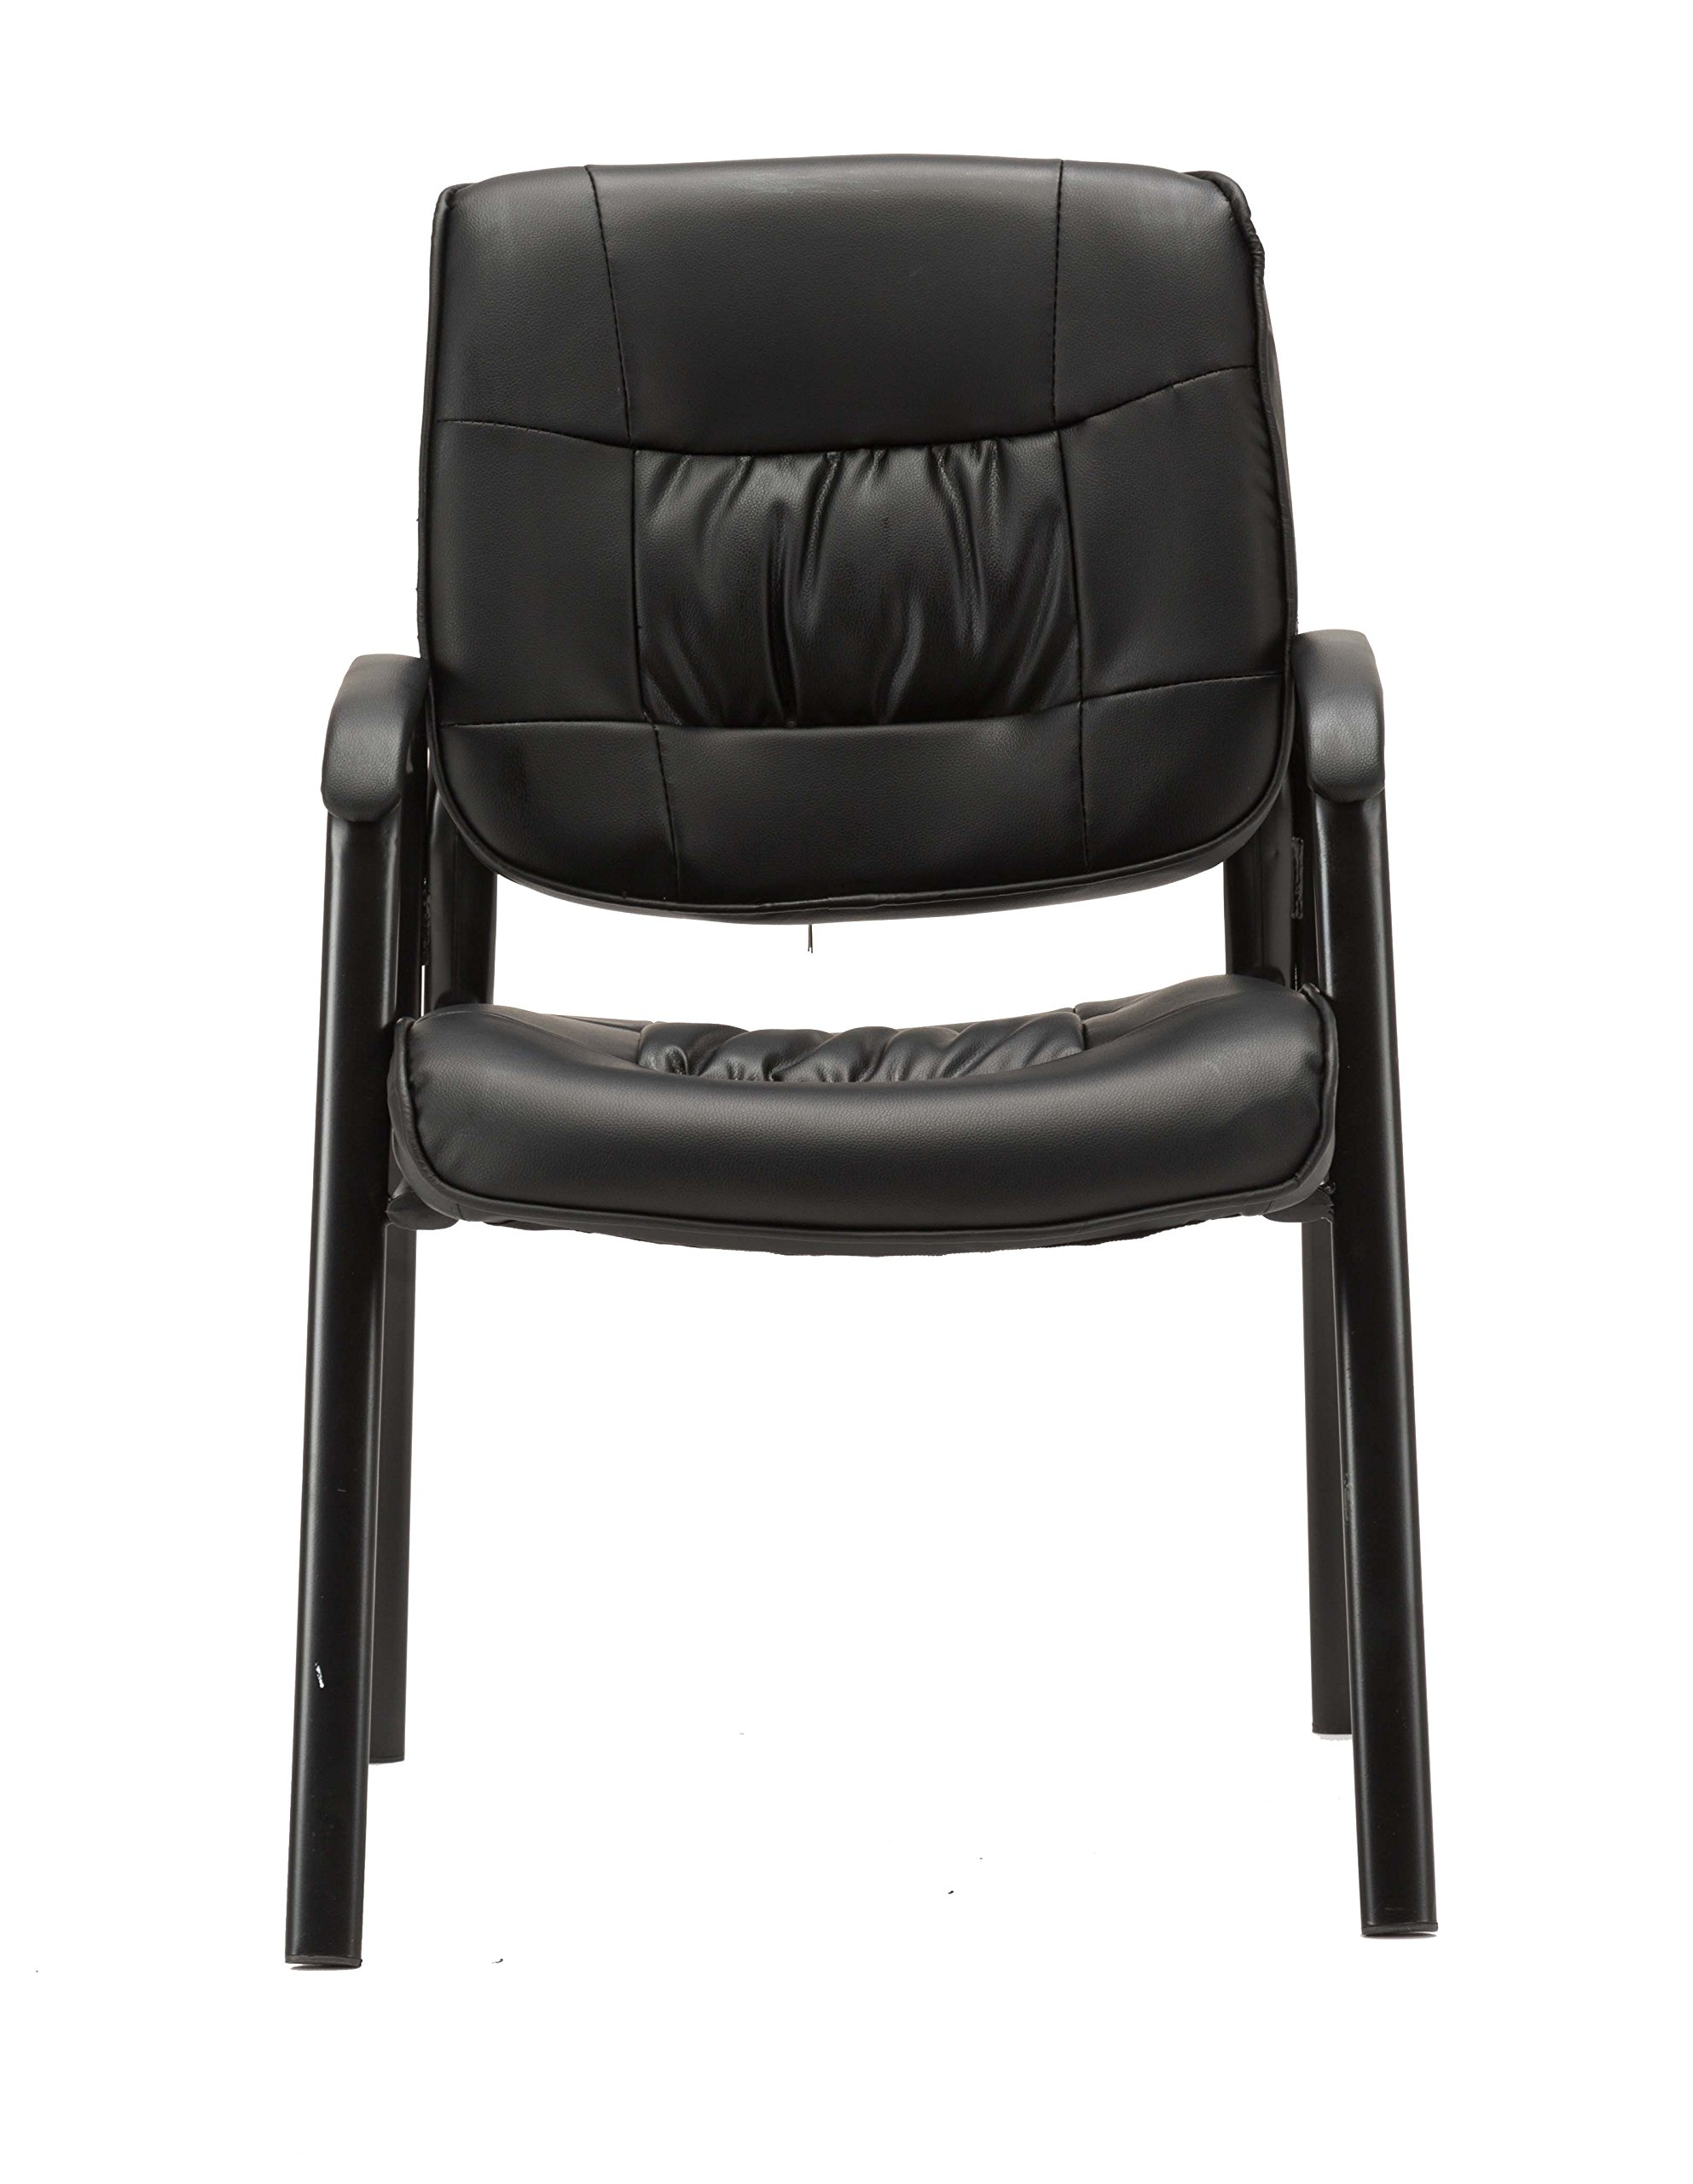 BTEXPERT Premium Leather Office Executive Chair Waiting Room Guest/Reception Side Conference Chair Black